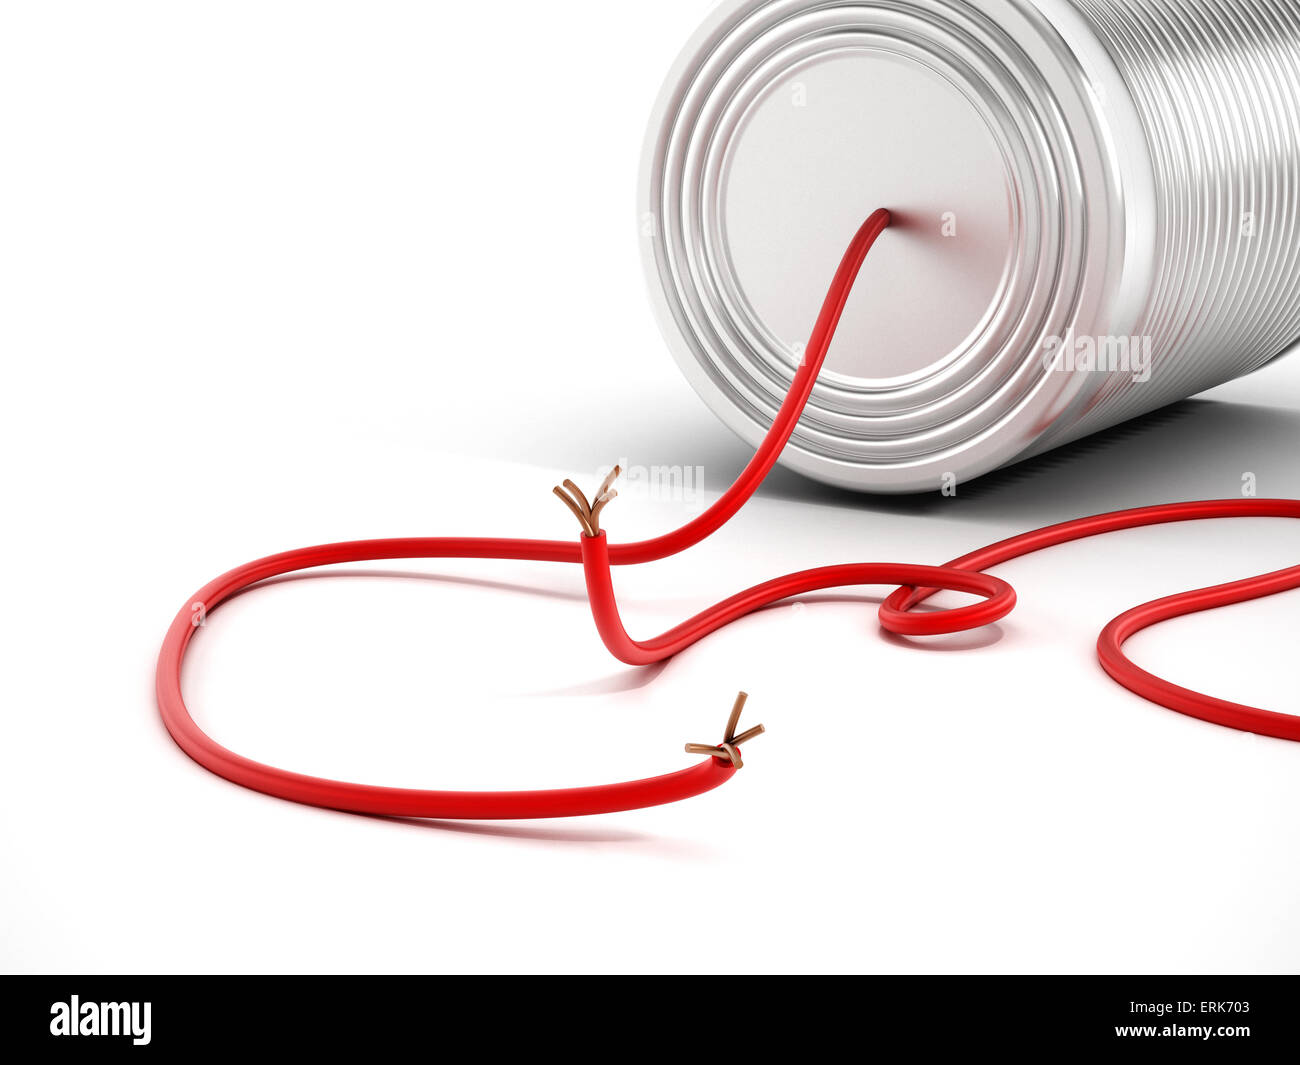 Communication breakdown with tin can having a disconnected cable - Stock Image